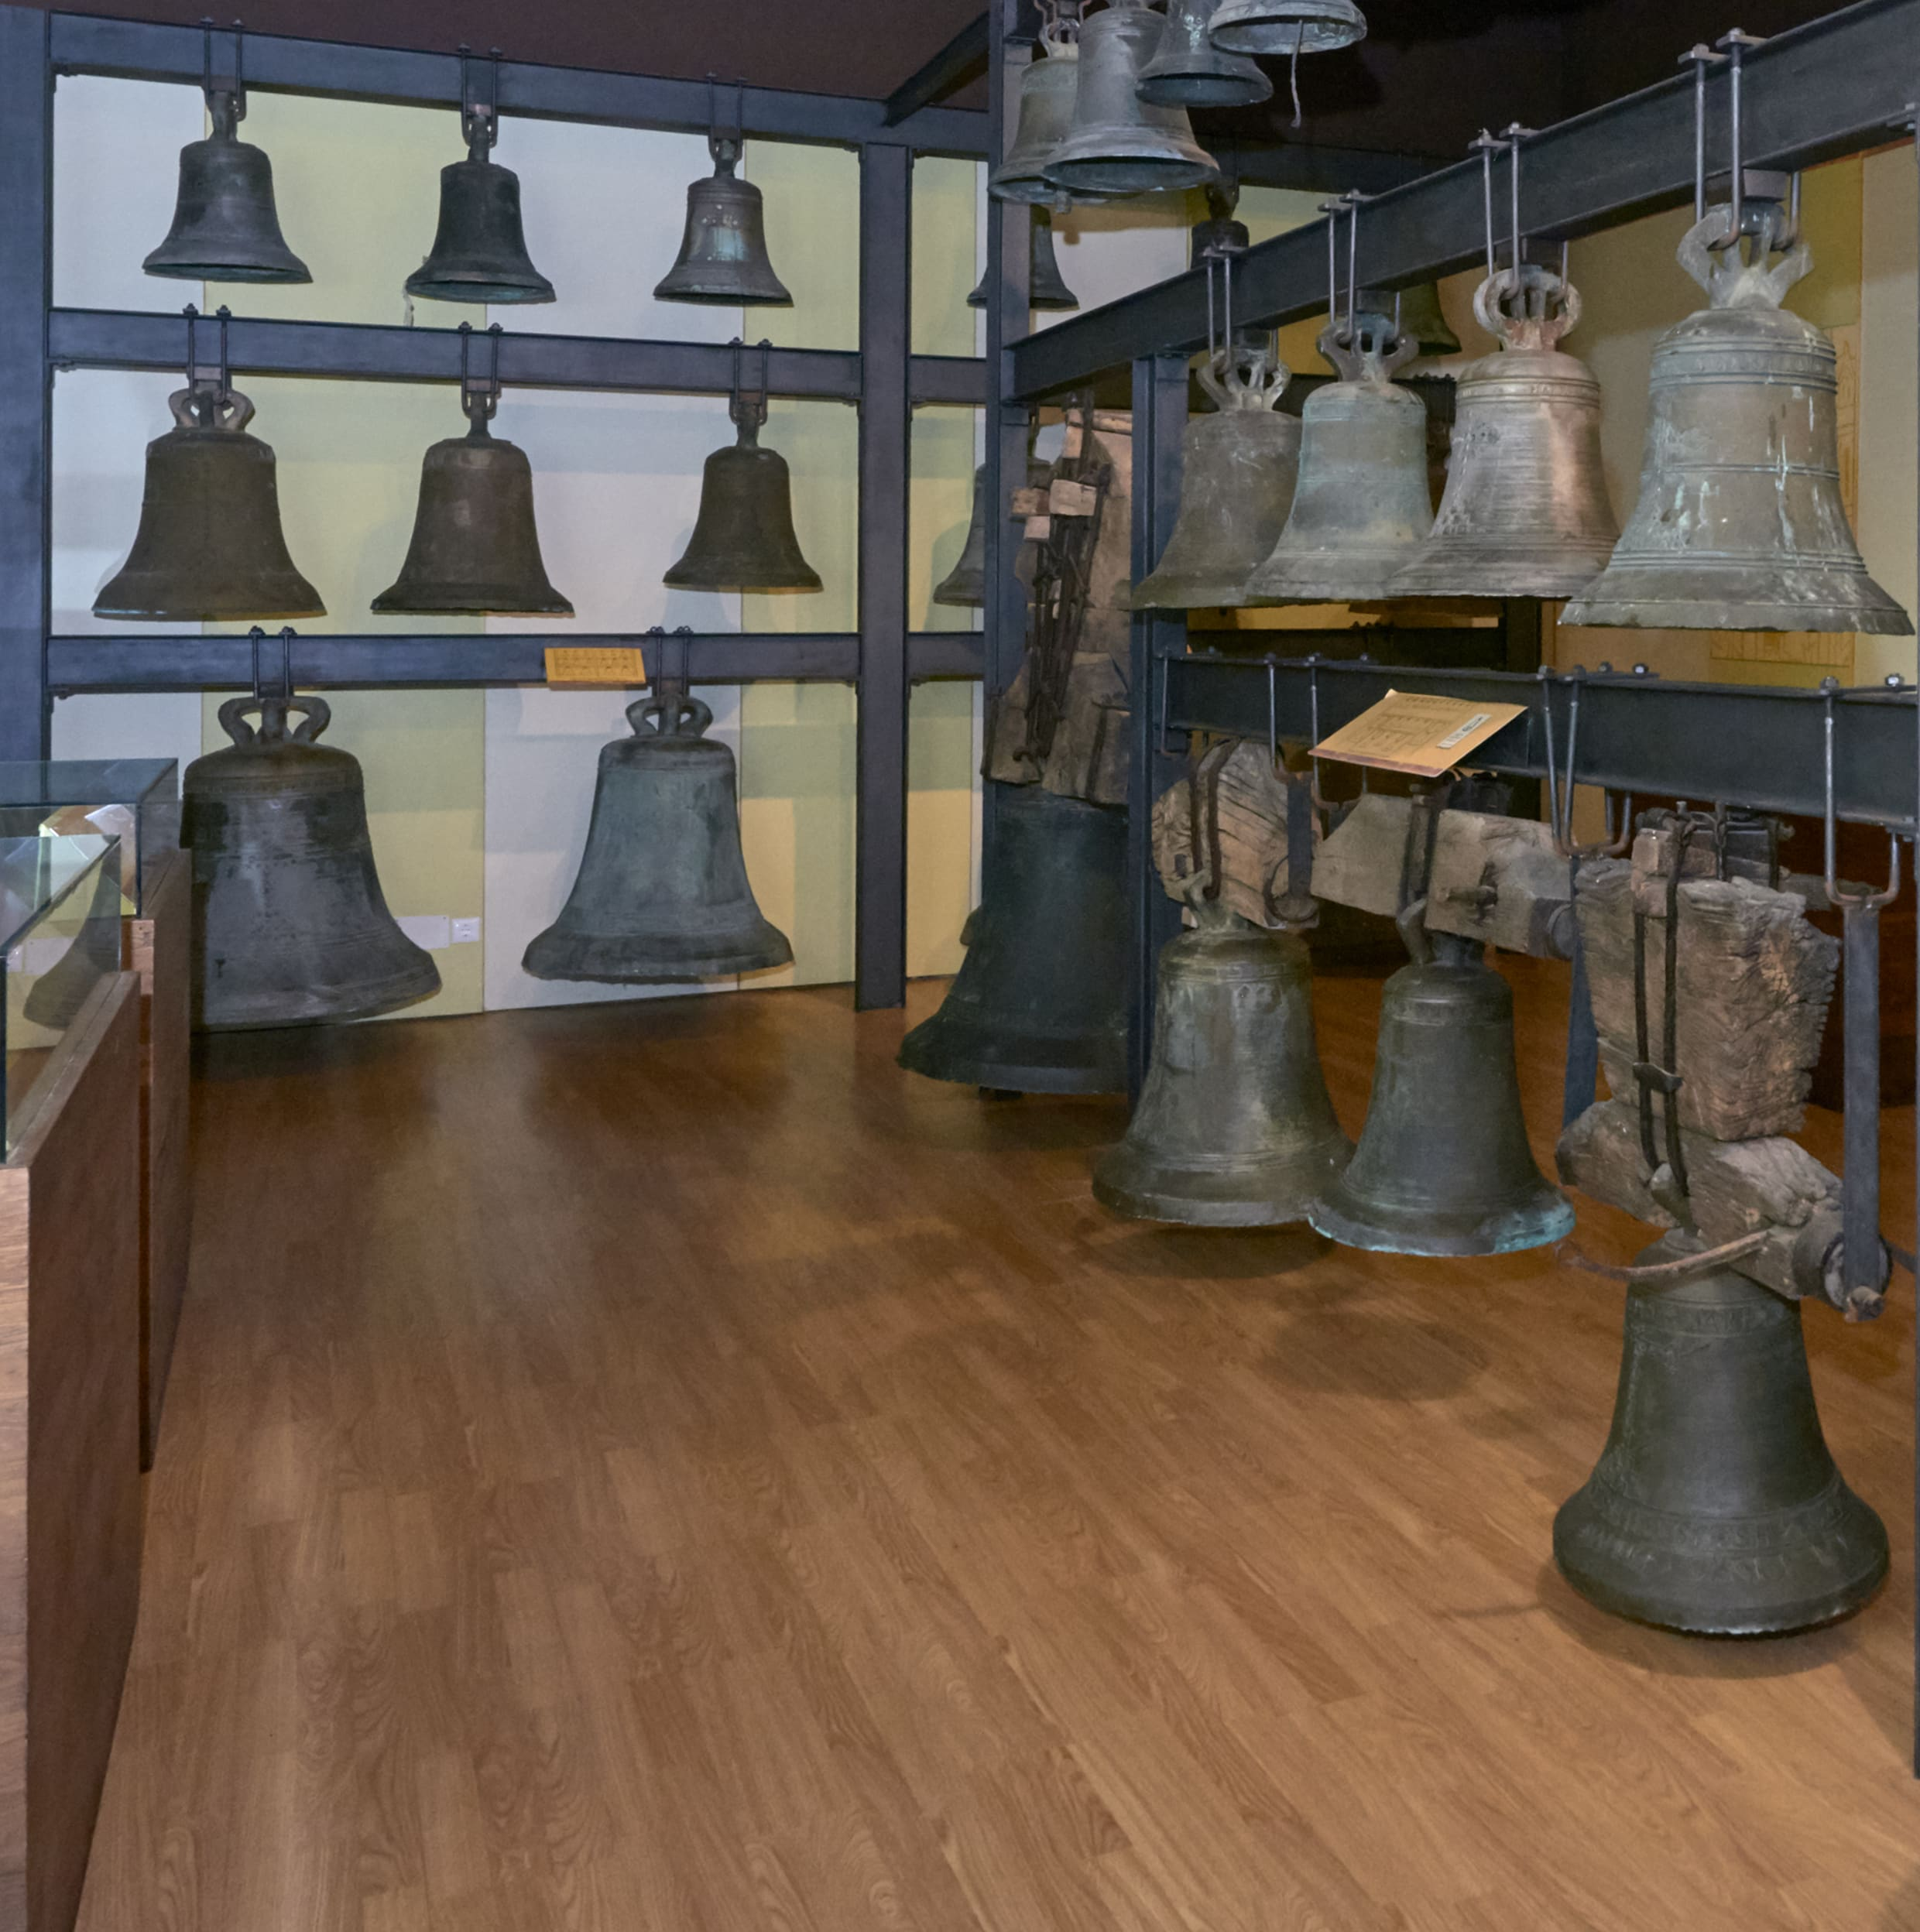 The Museum of the Bell in Meruelo